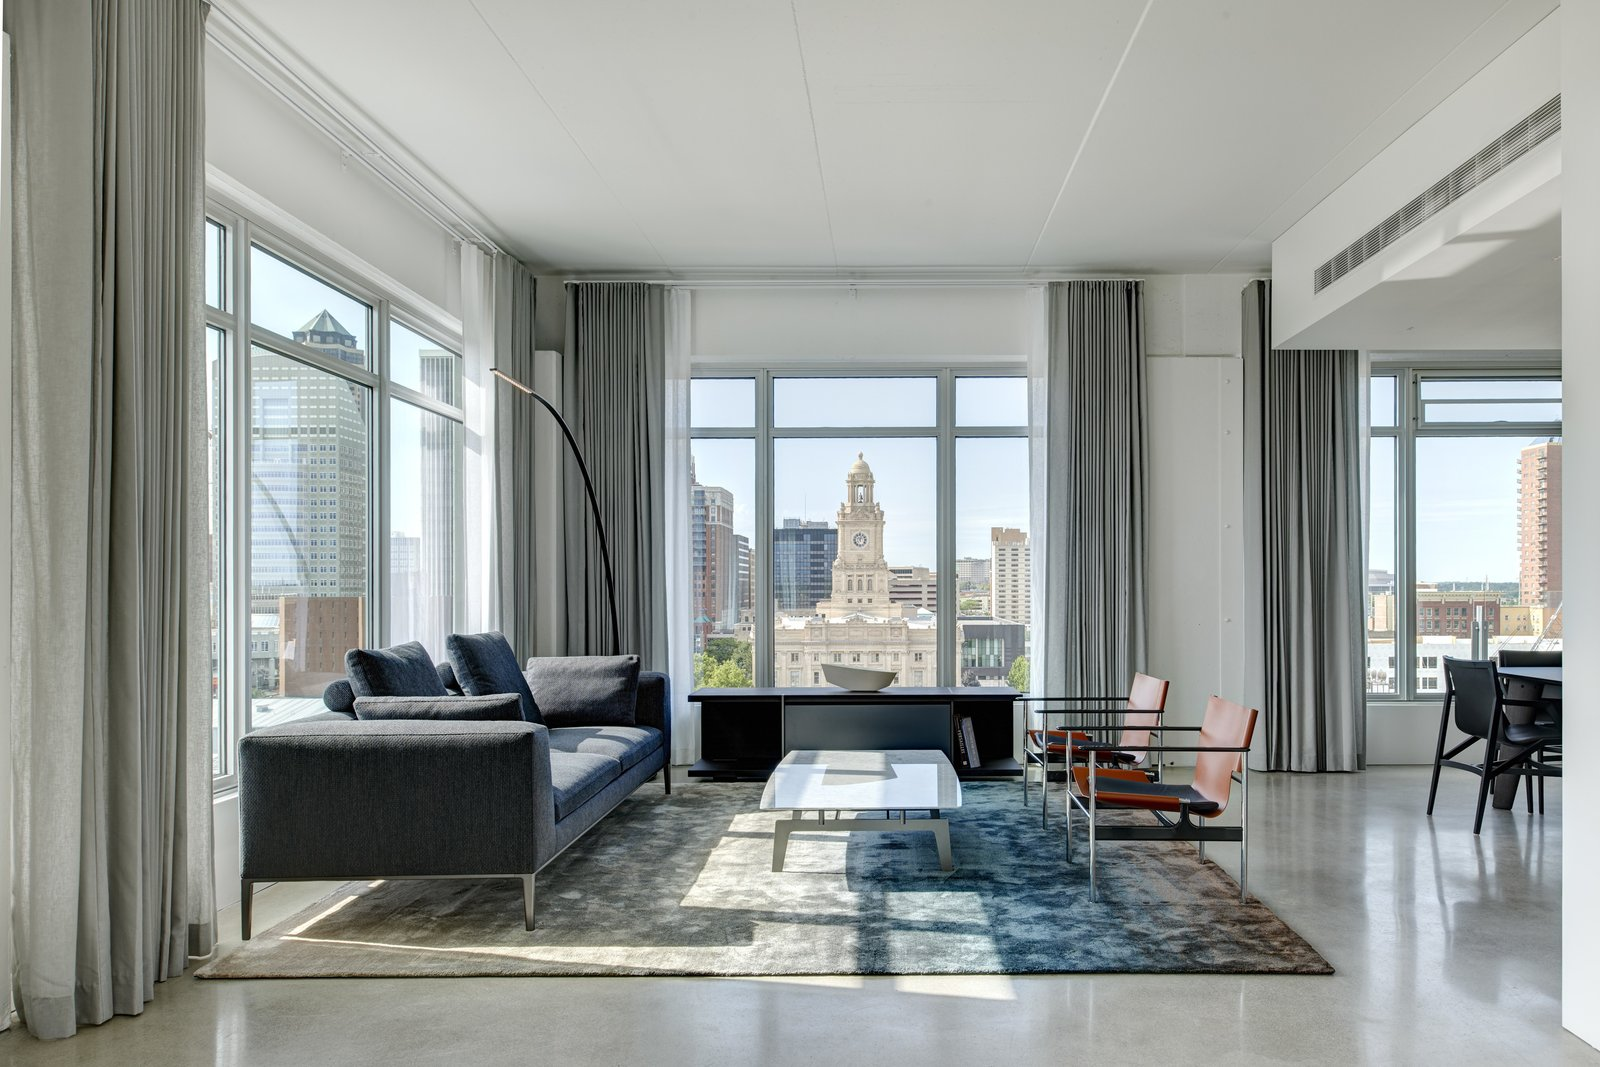 Living Room, Lamps, Storage, Console Tables, Sofa, Chair, Coffee Tables, and Concrete Floor The primary living space is located at the corner of the condo offering views to downtown.  Whiteline Residence by Neumann Monson Architects